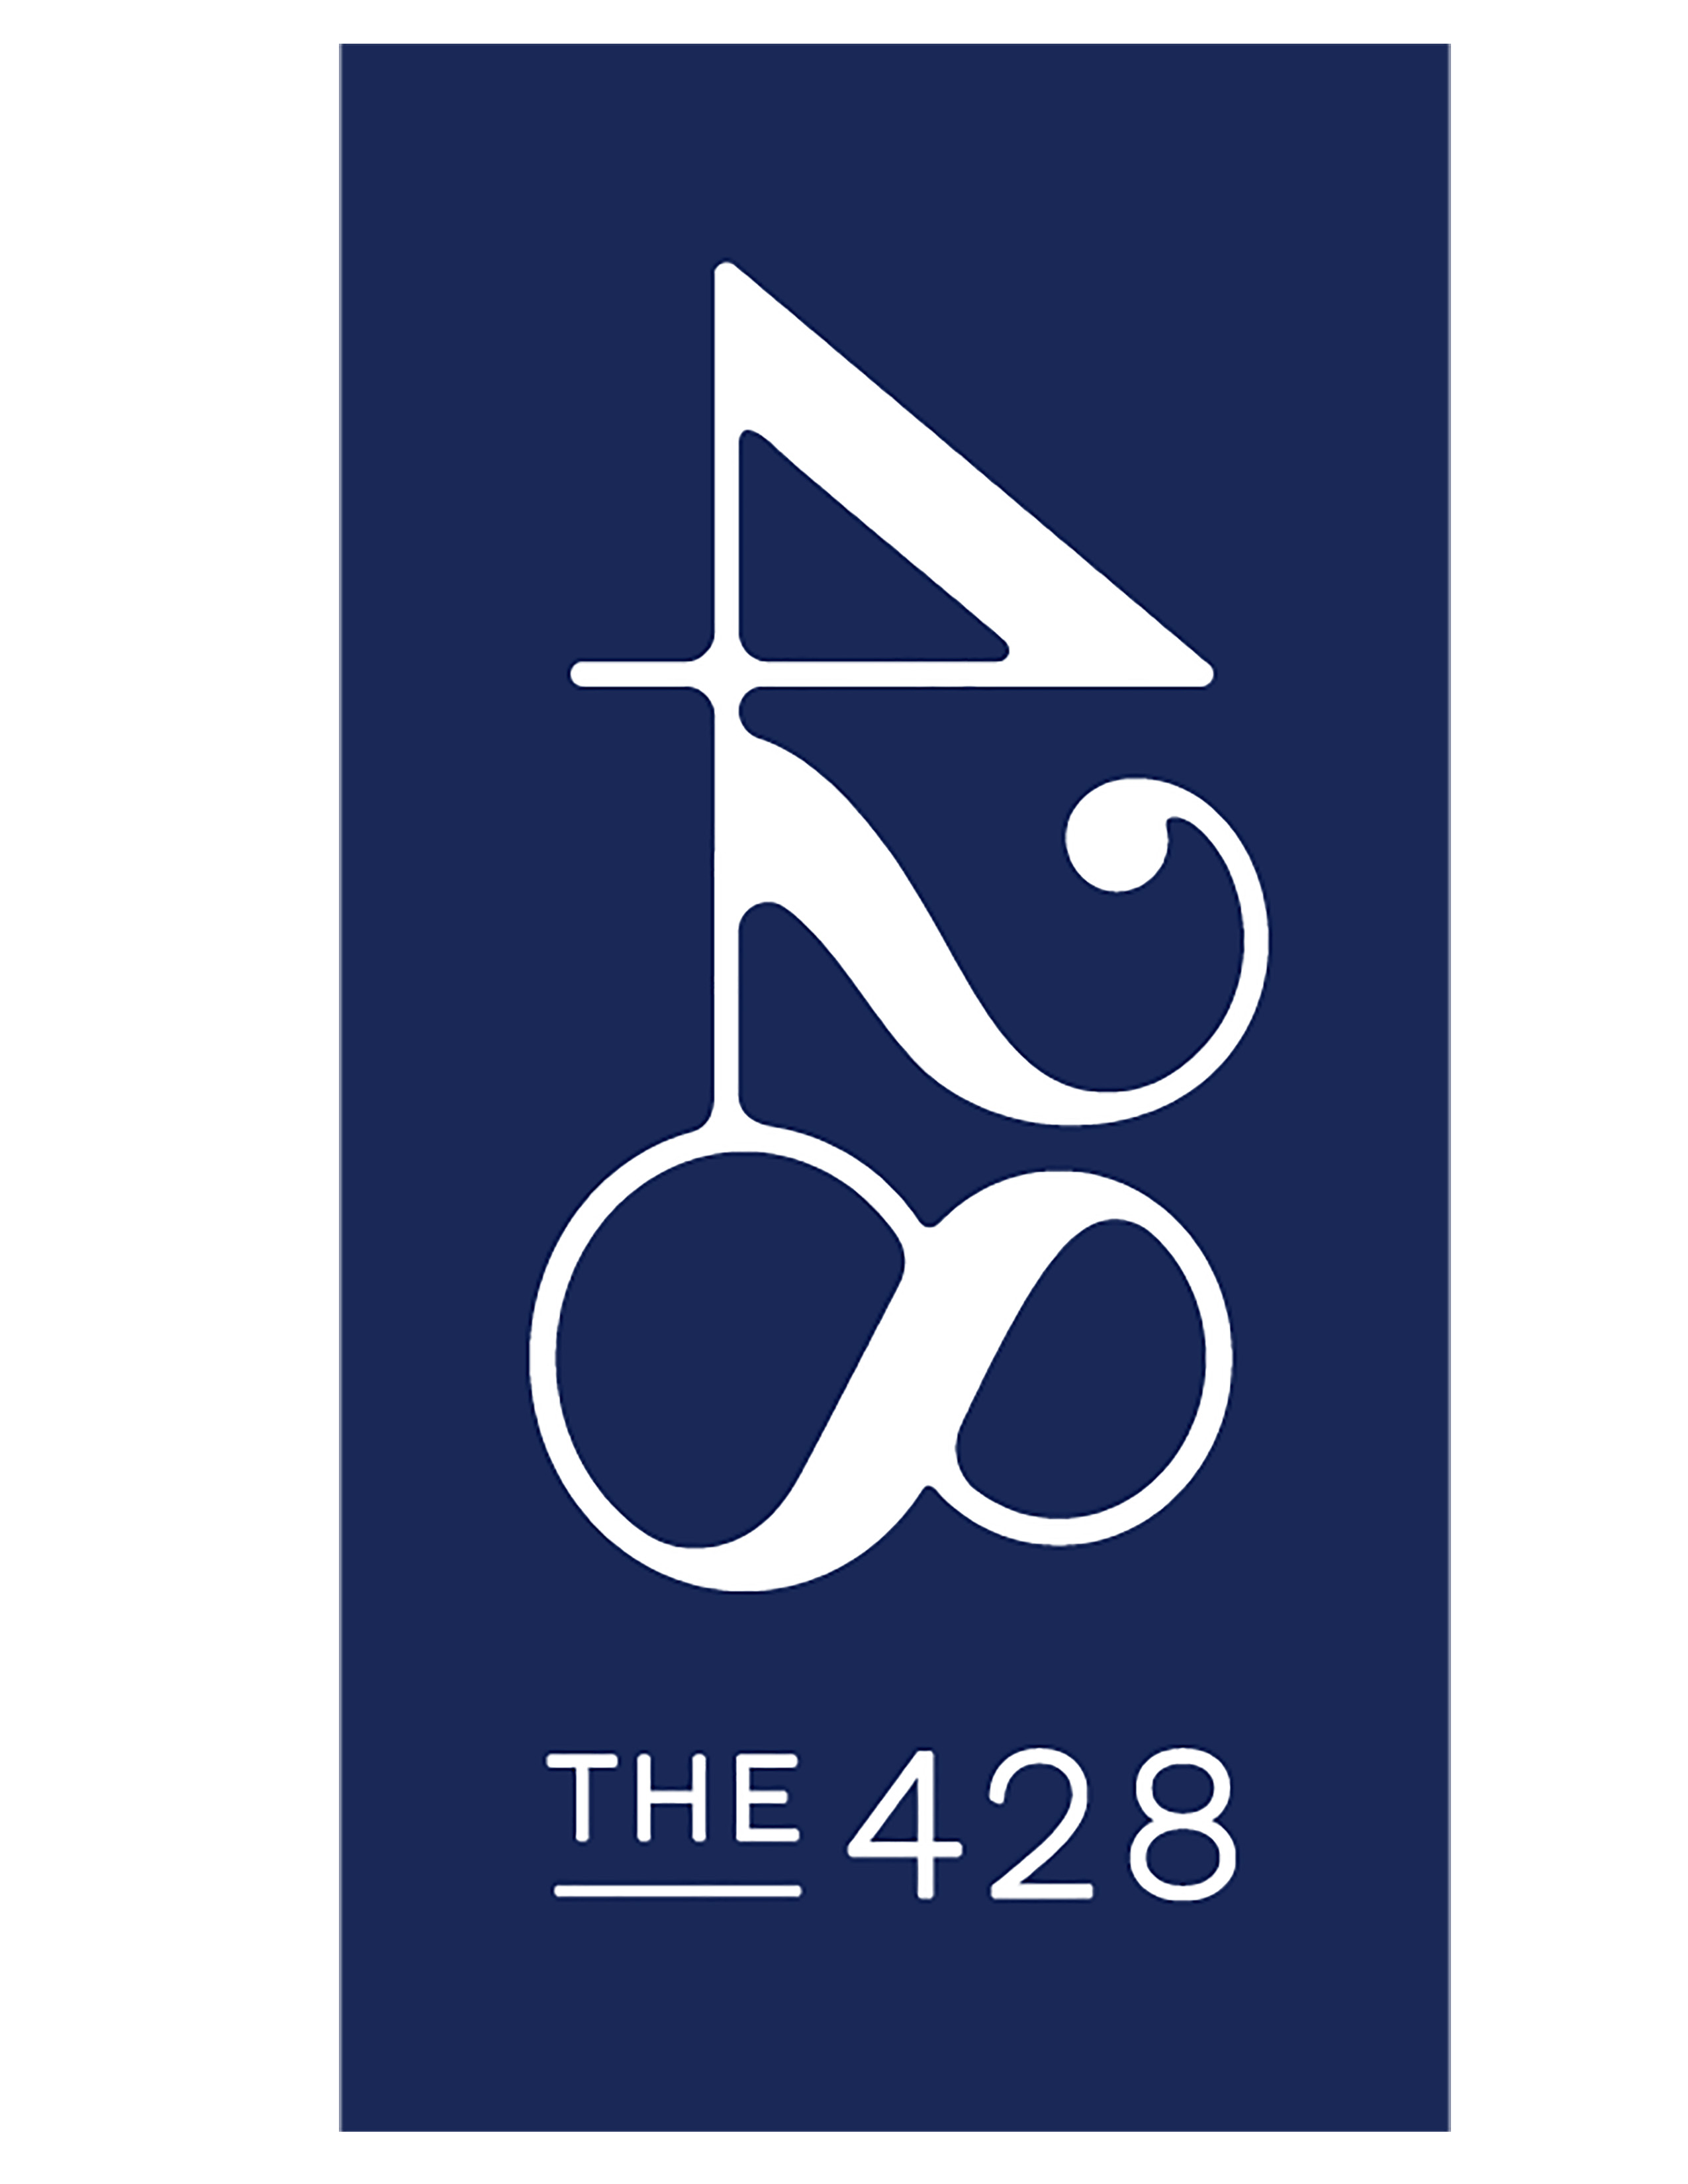 The 428